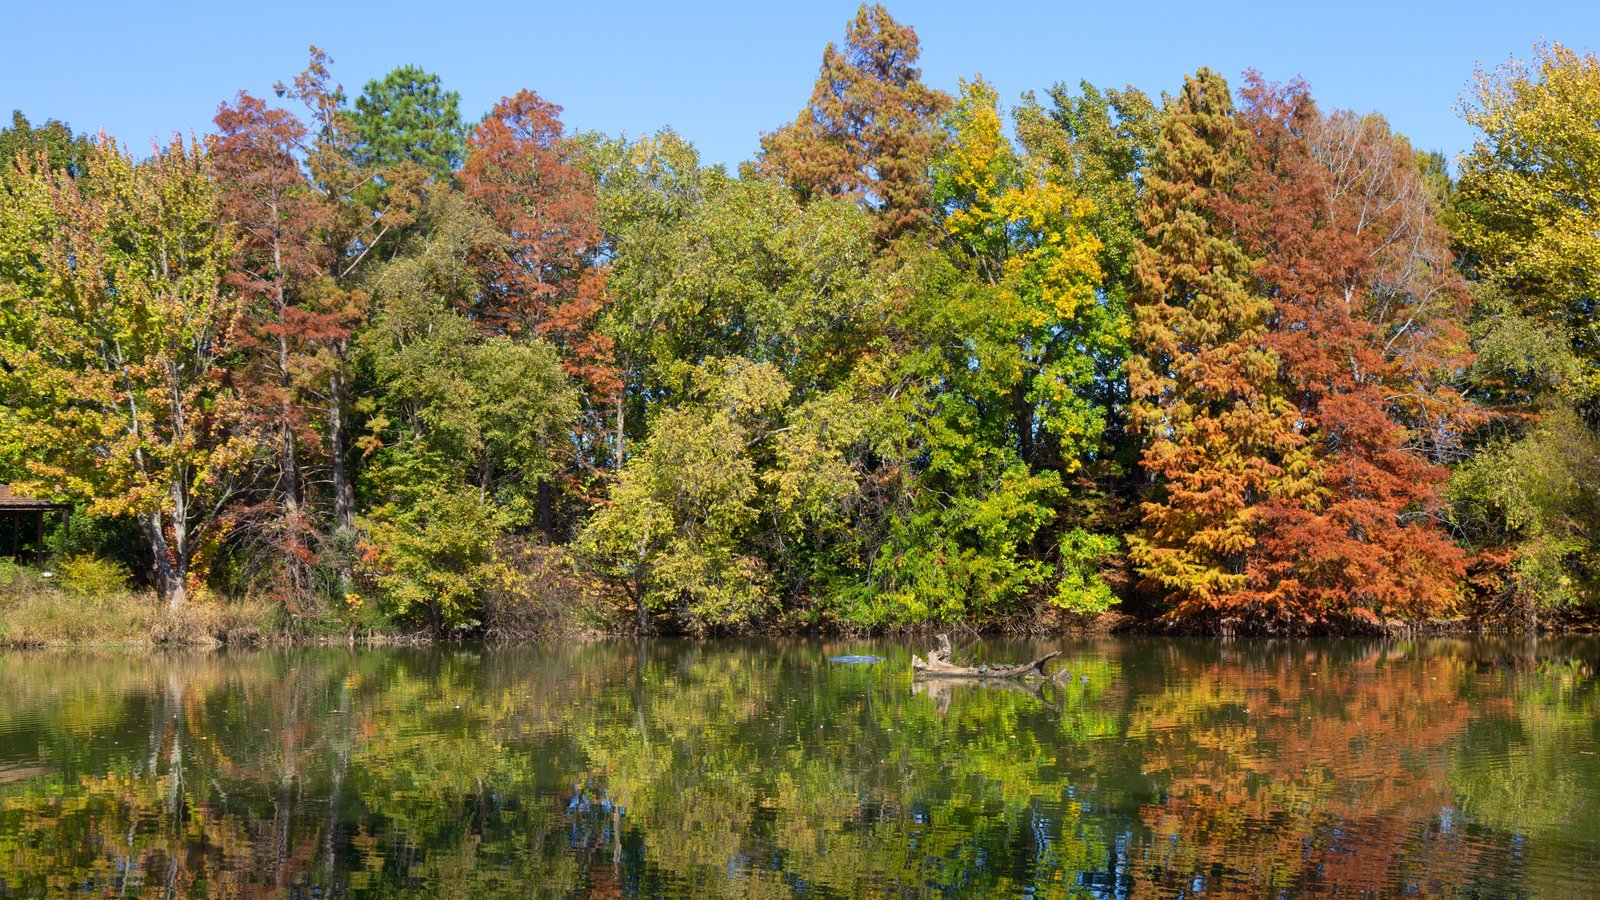 Nature Pictures: View Images of San Antonio